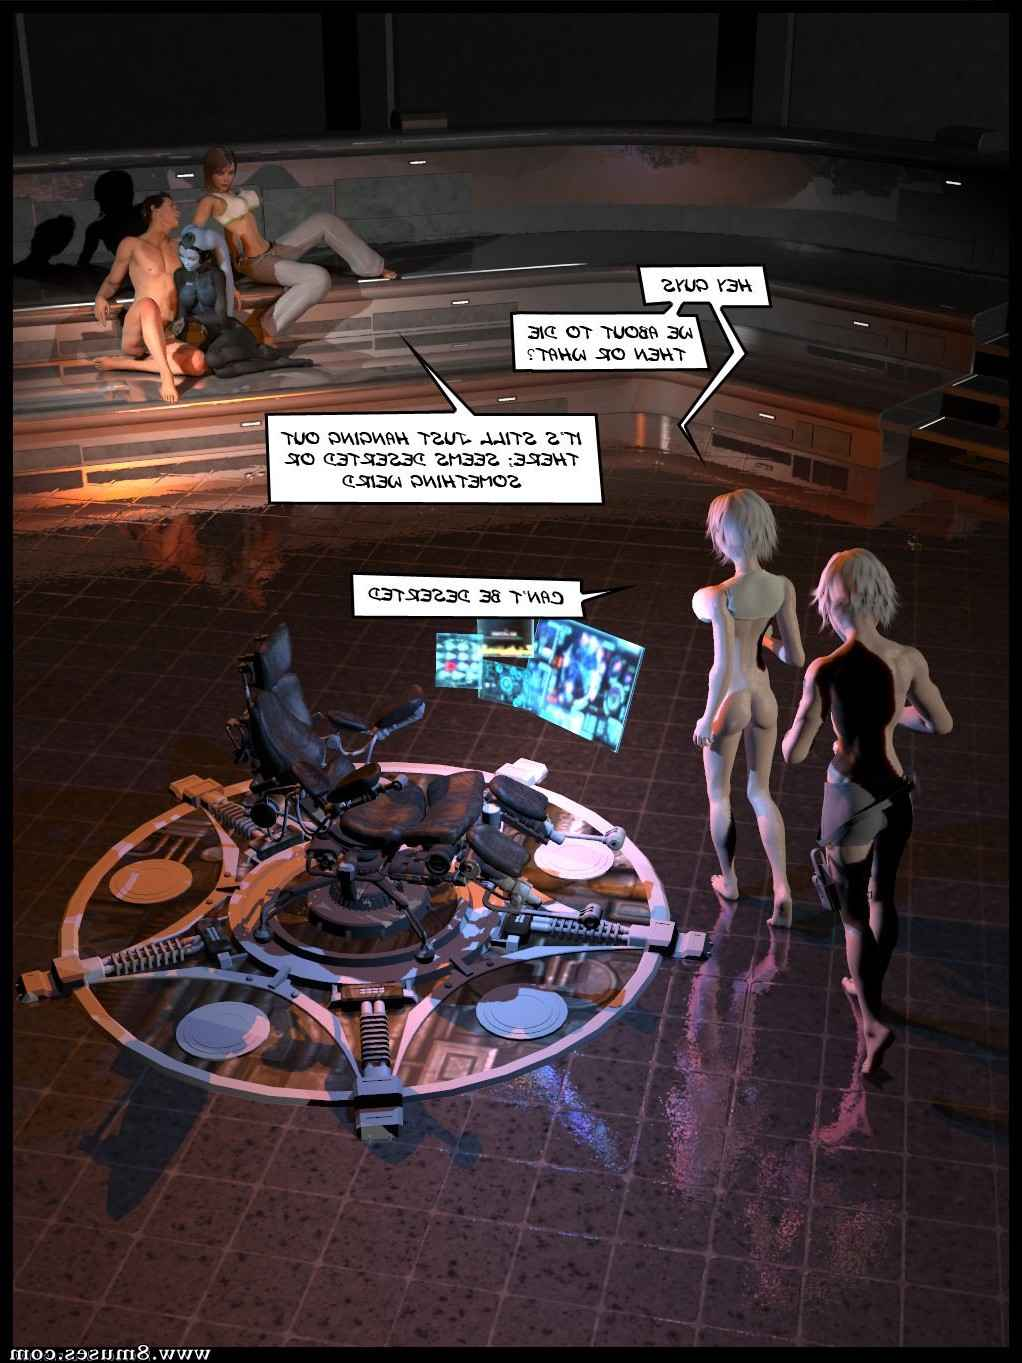 project-bellerophon-comics/18-Shadows-and-Dust 18-Shadows_and_Dust__8muses_-_Sex_and_Porn_Comics_20.jpg